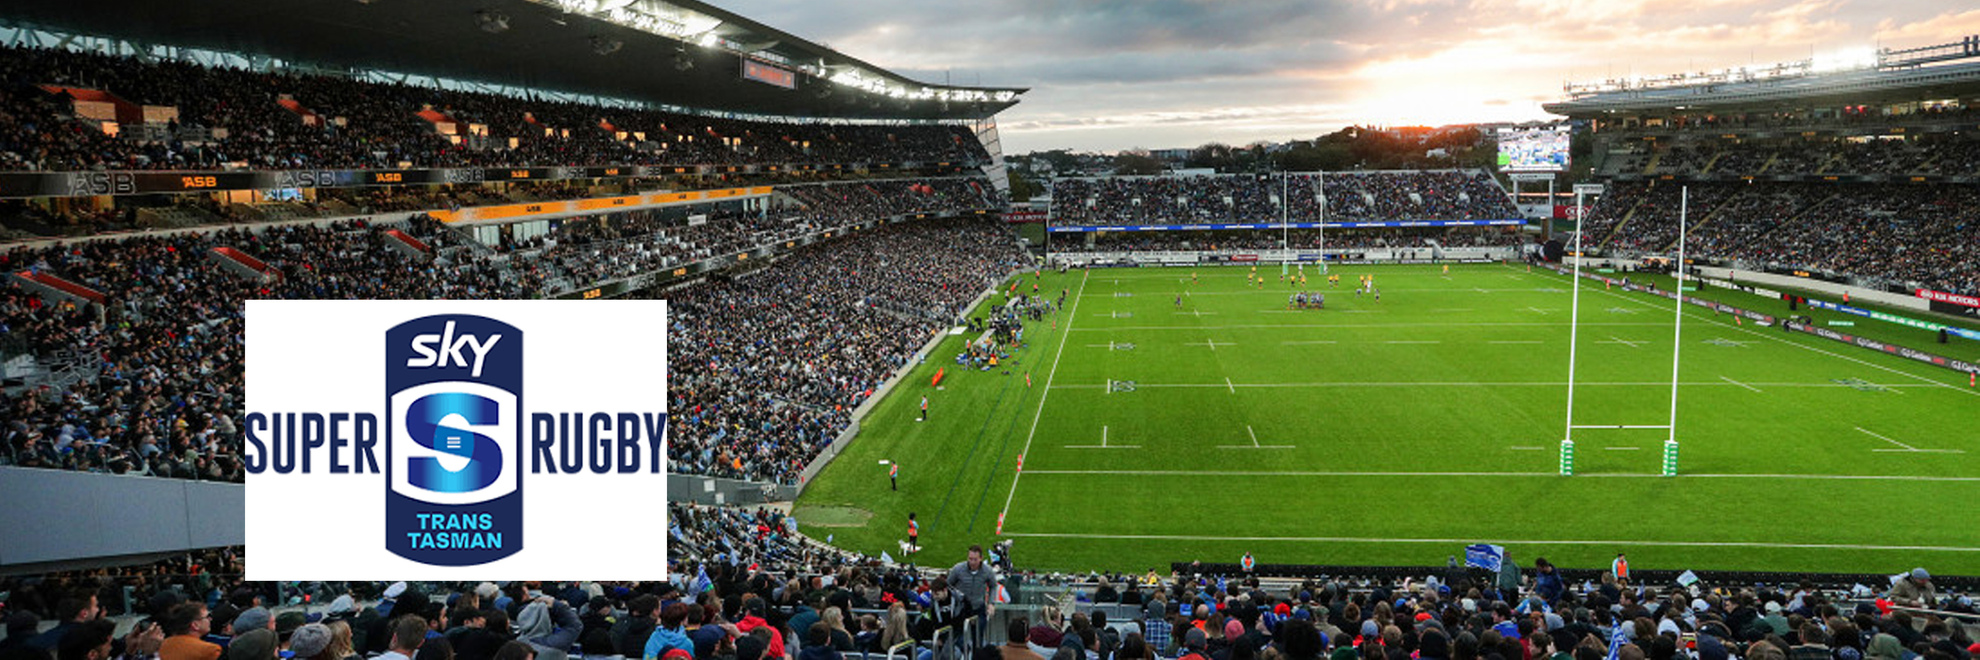 Sky Trans Tasman Super Rugby 2021 - Experience Group Hospitality Banner